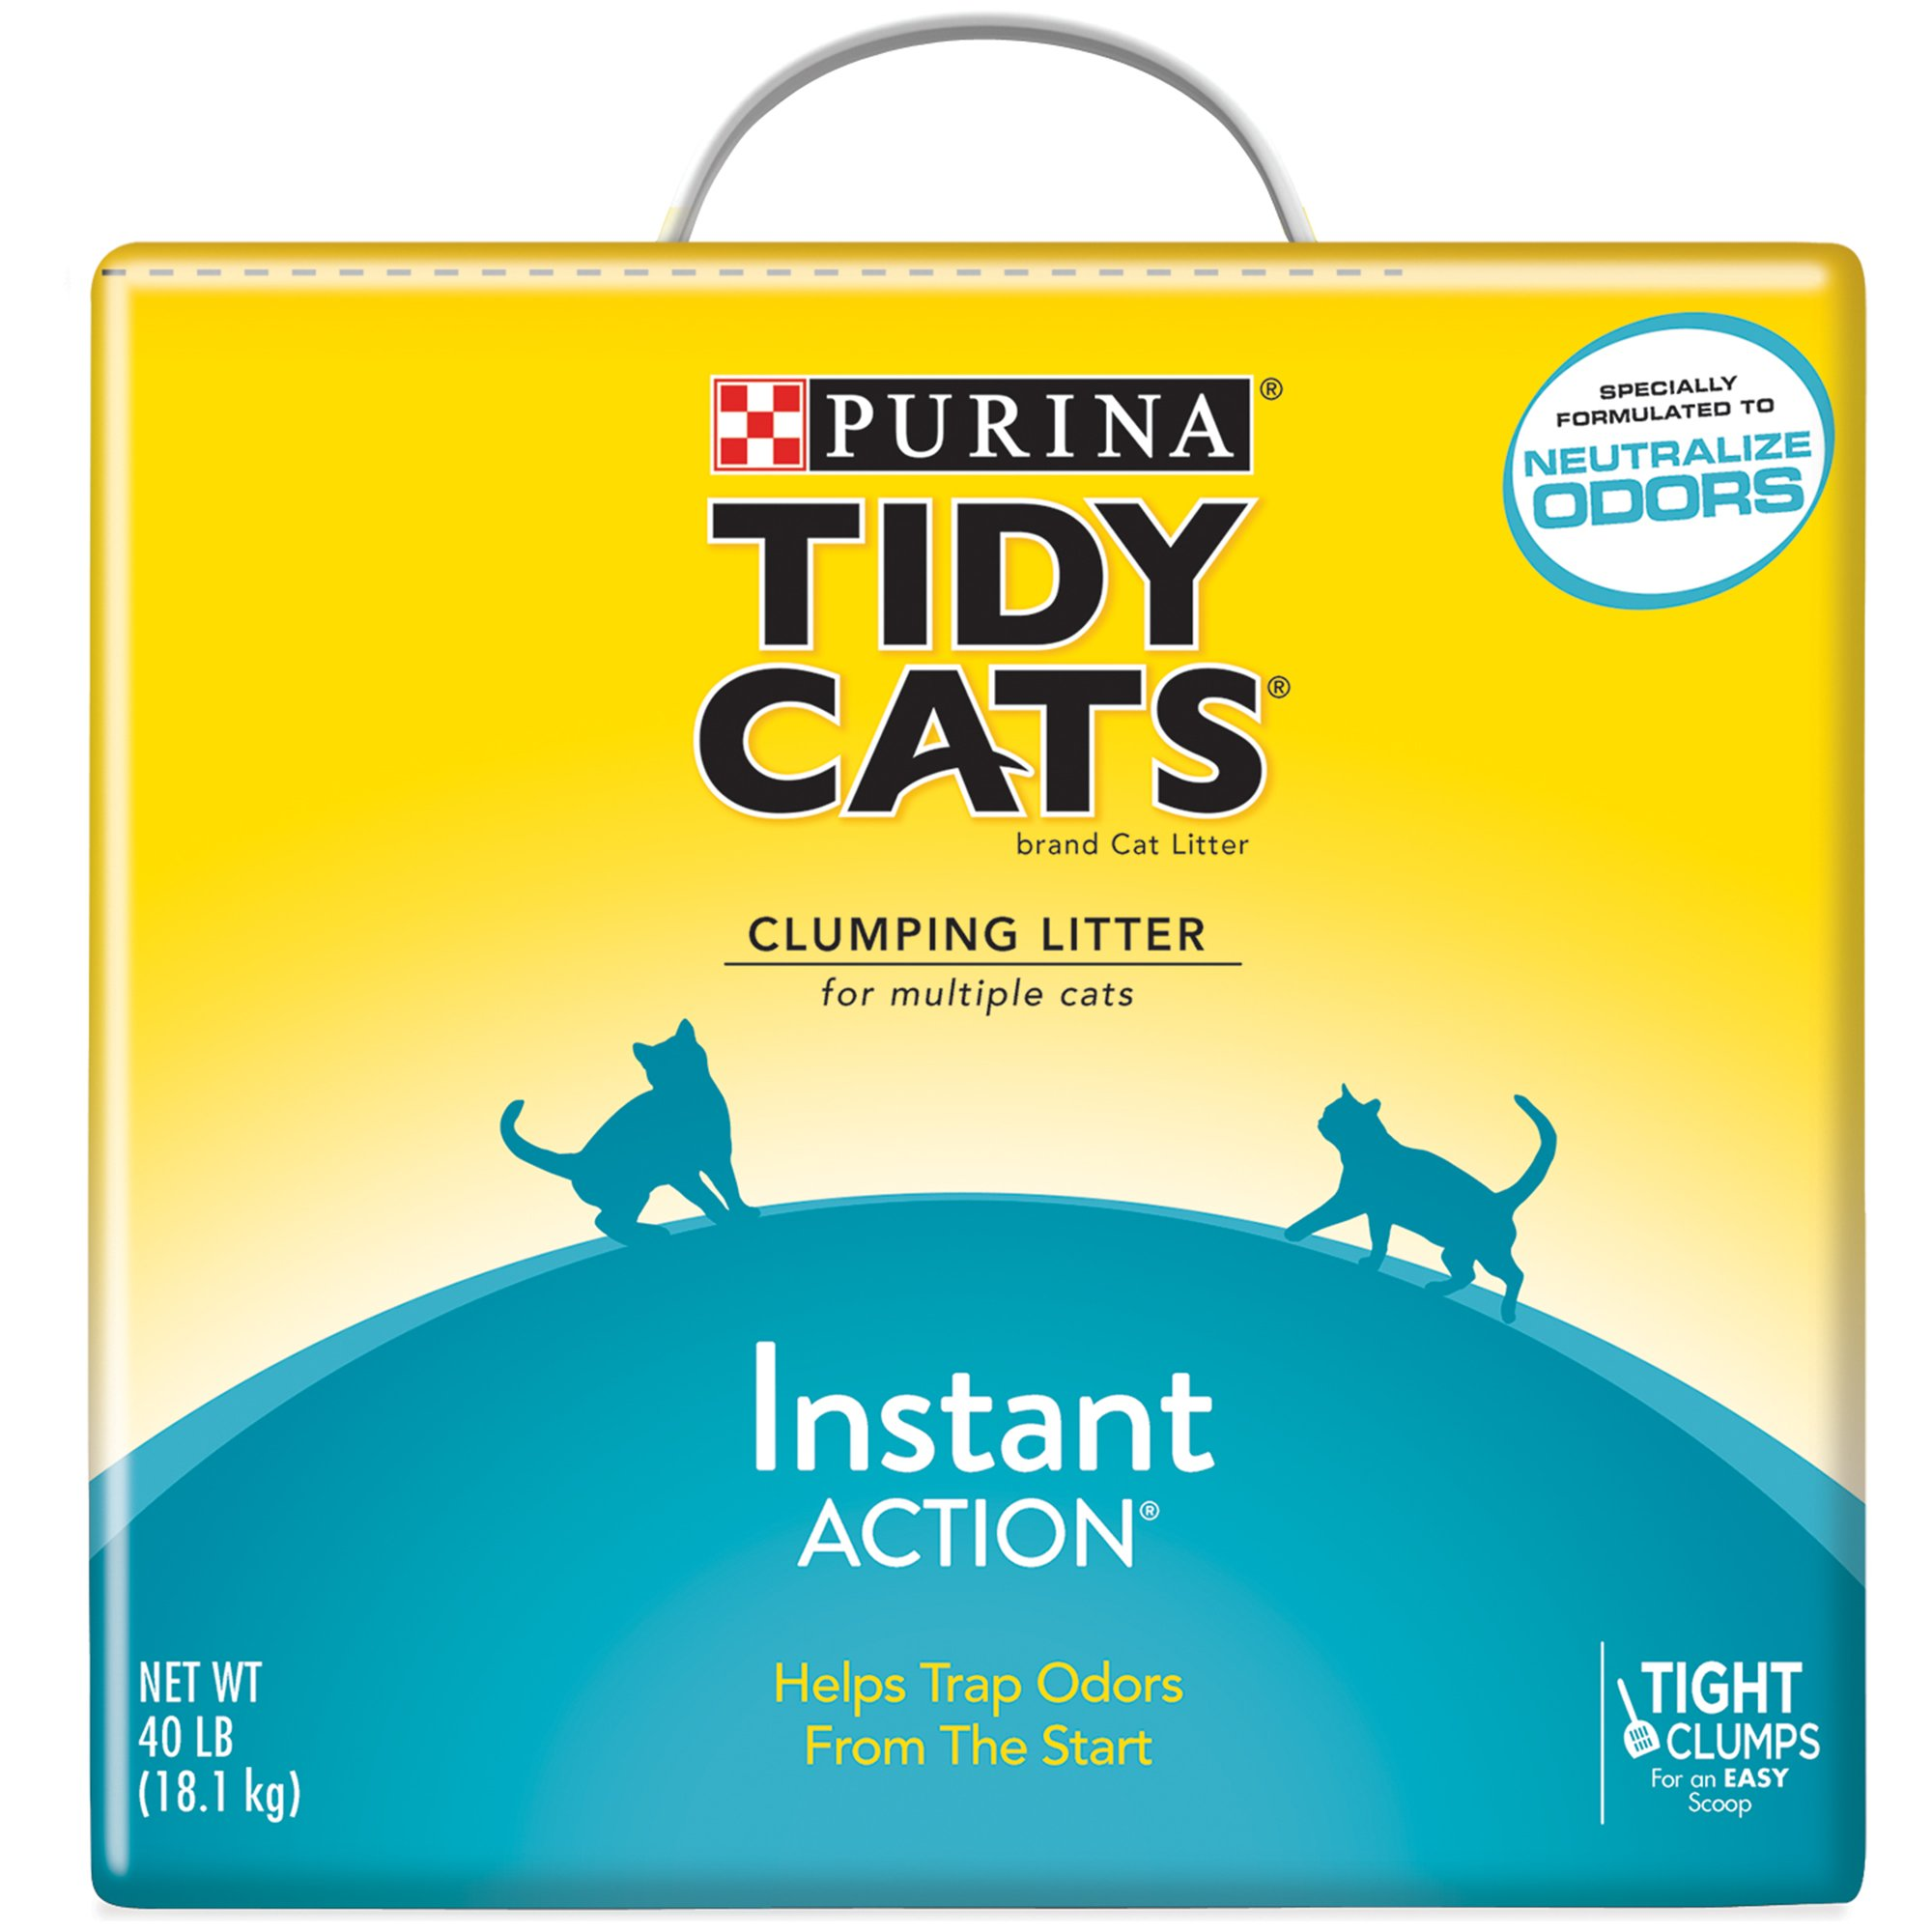 Purina Tidy Cats Clumping Litter Instant Action for Multiple Cats